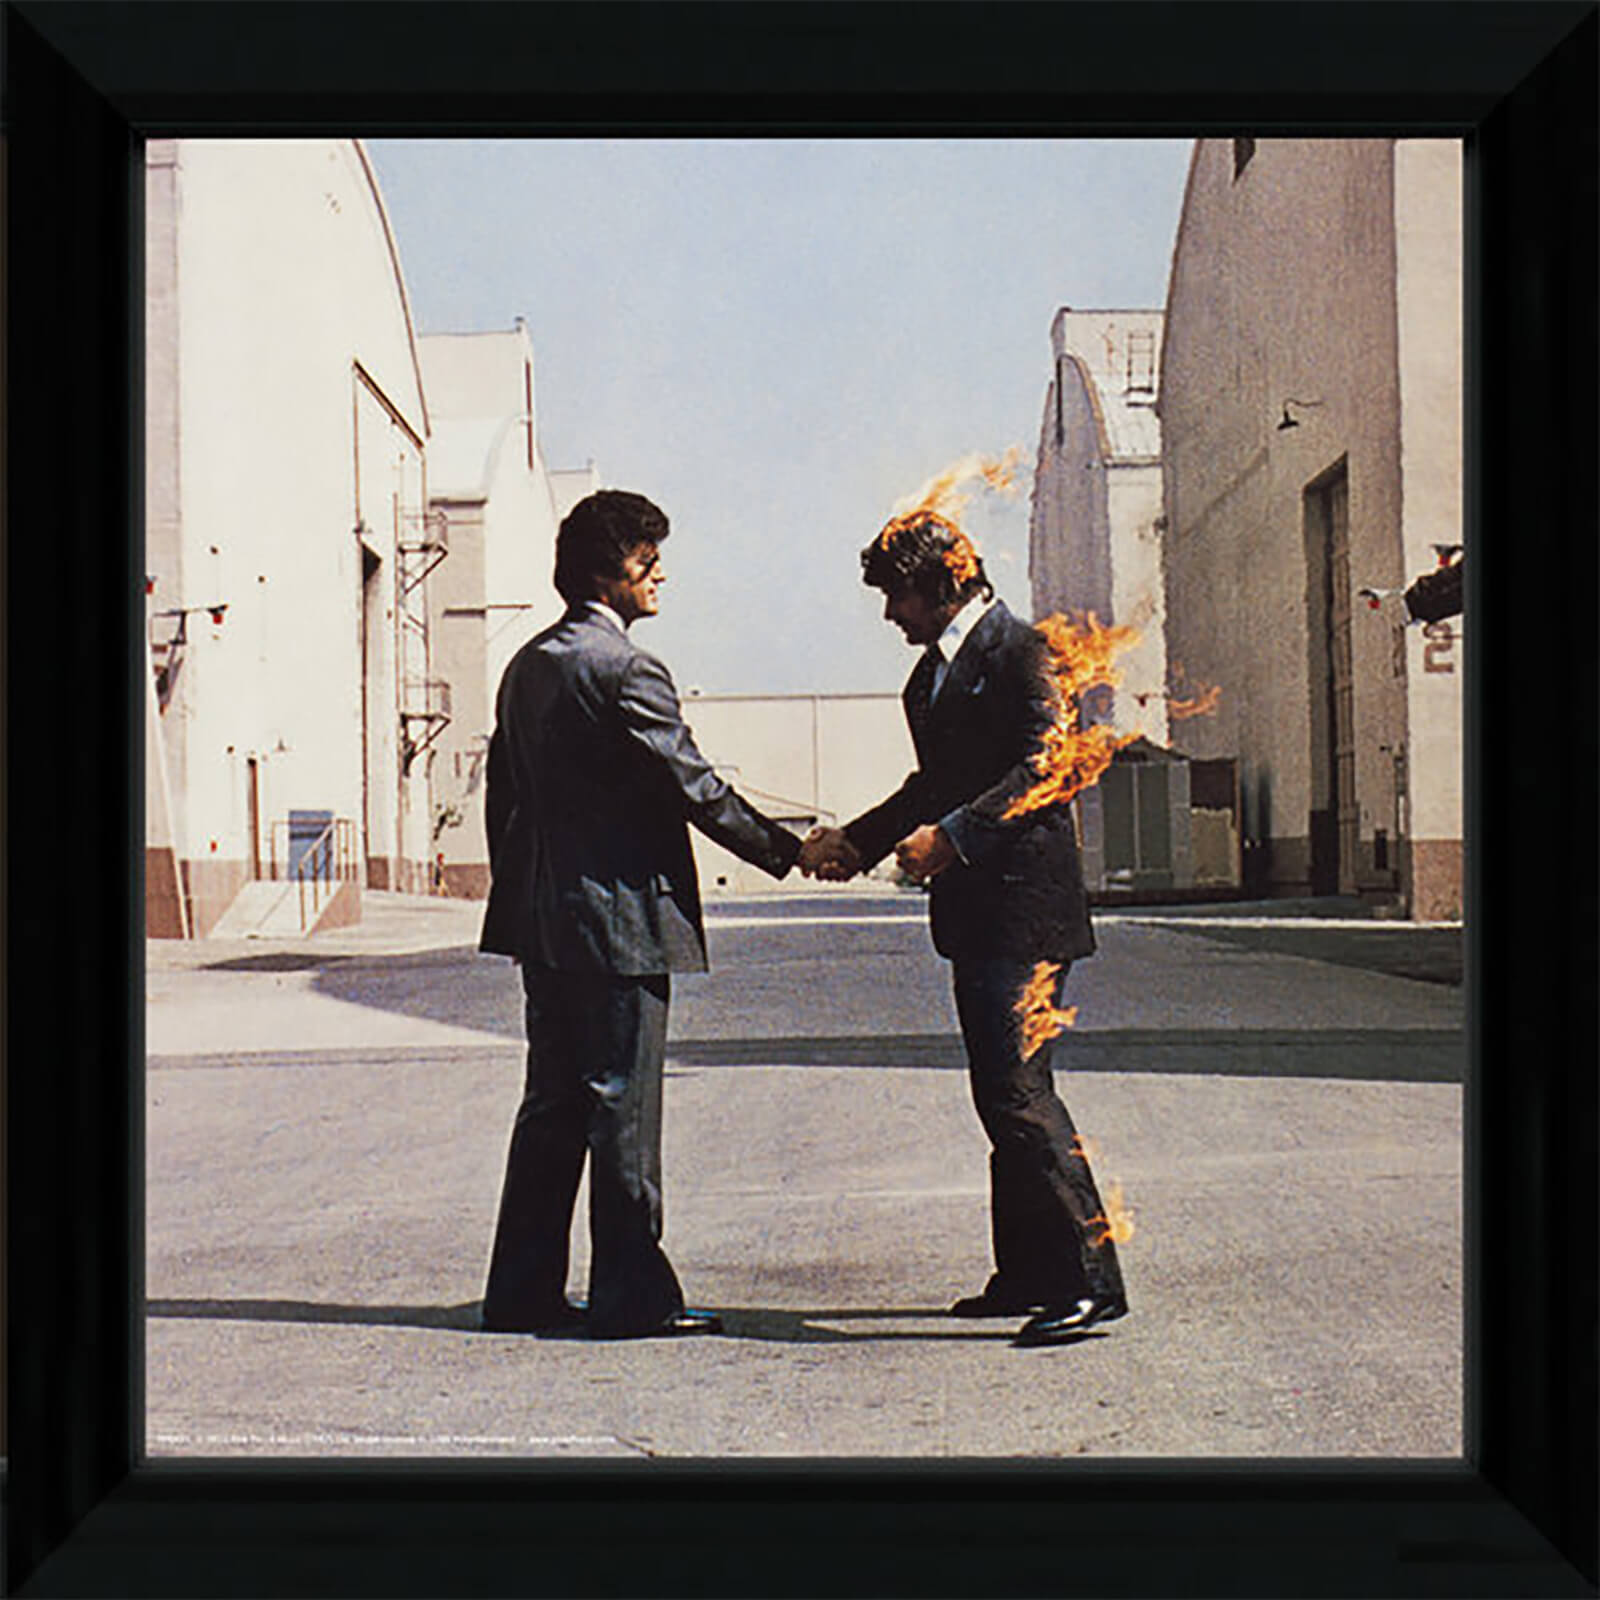 "Pink Floyd Wish You Were Here - 12"""" x 12"""" Framed Album Prints"